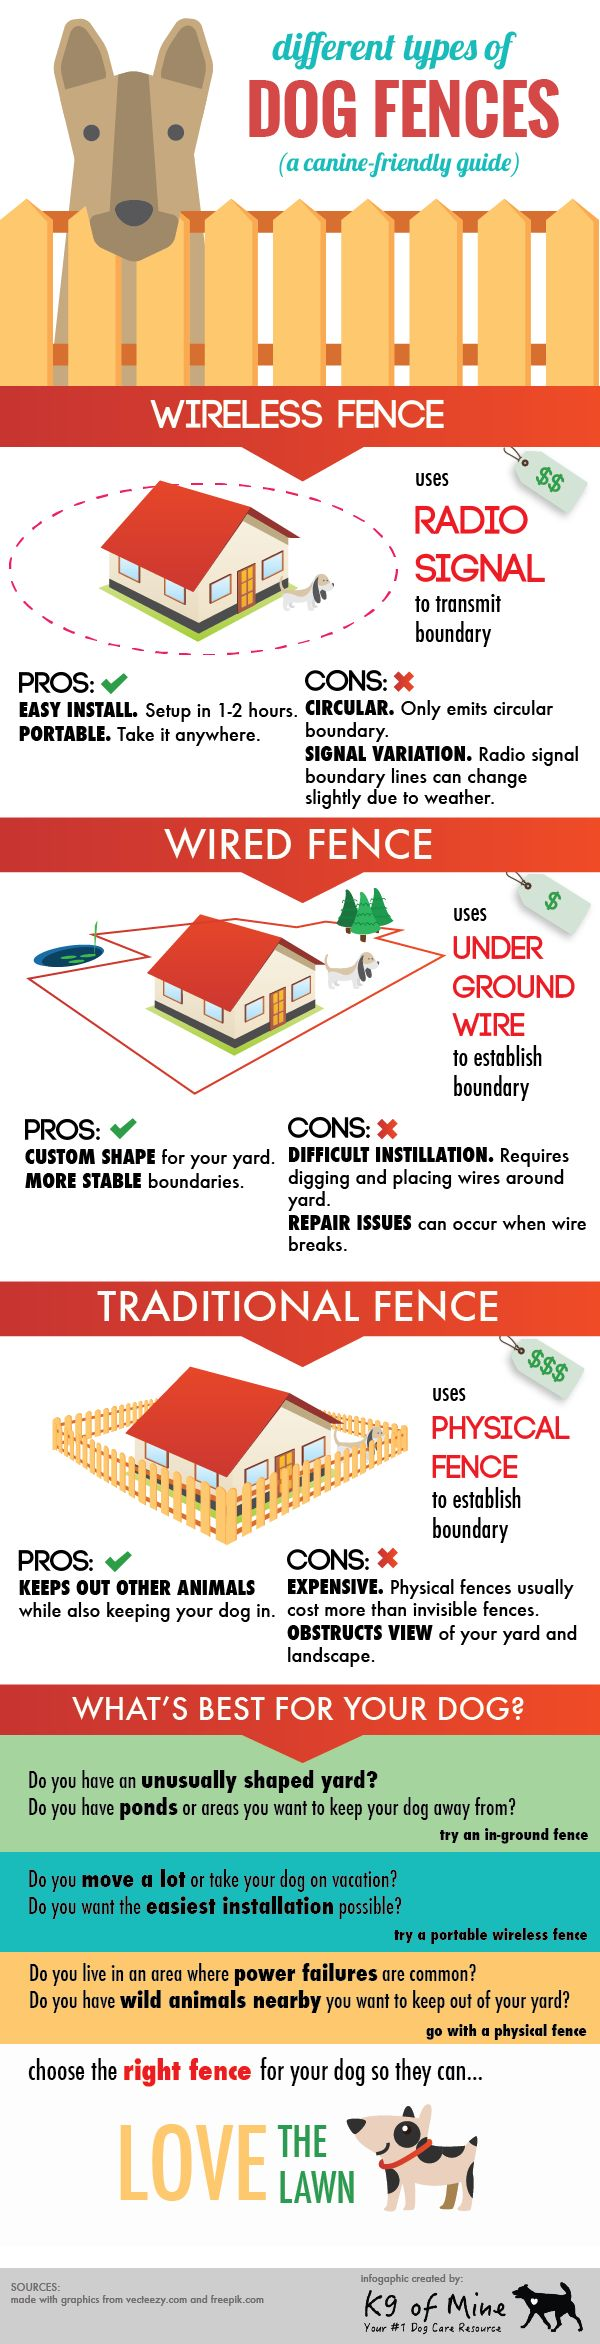 Invisible Dog Fence 101 Infographic